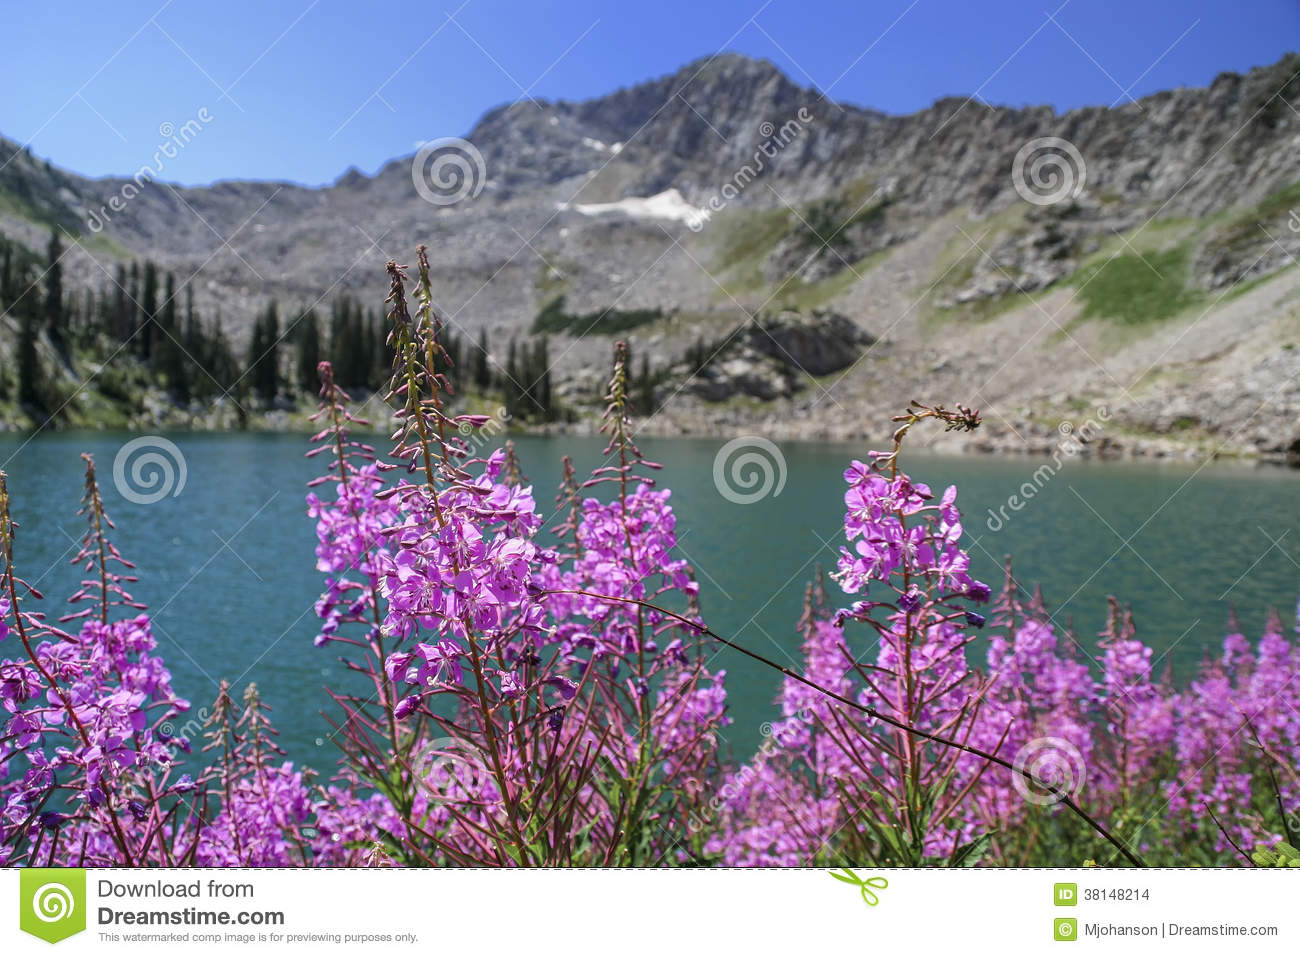 Fire Weed and White Pine Lake